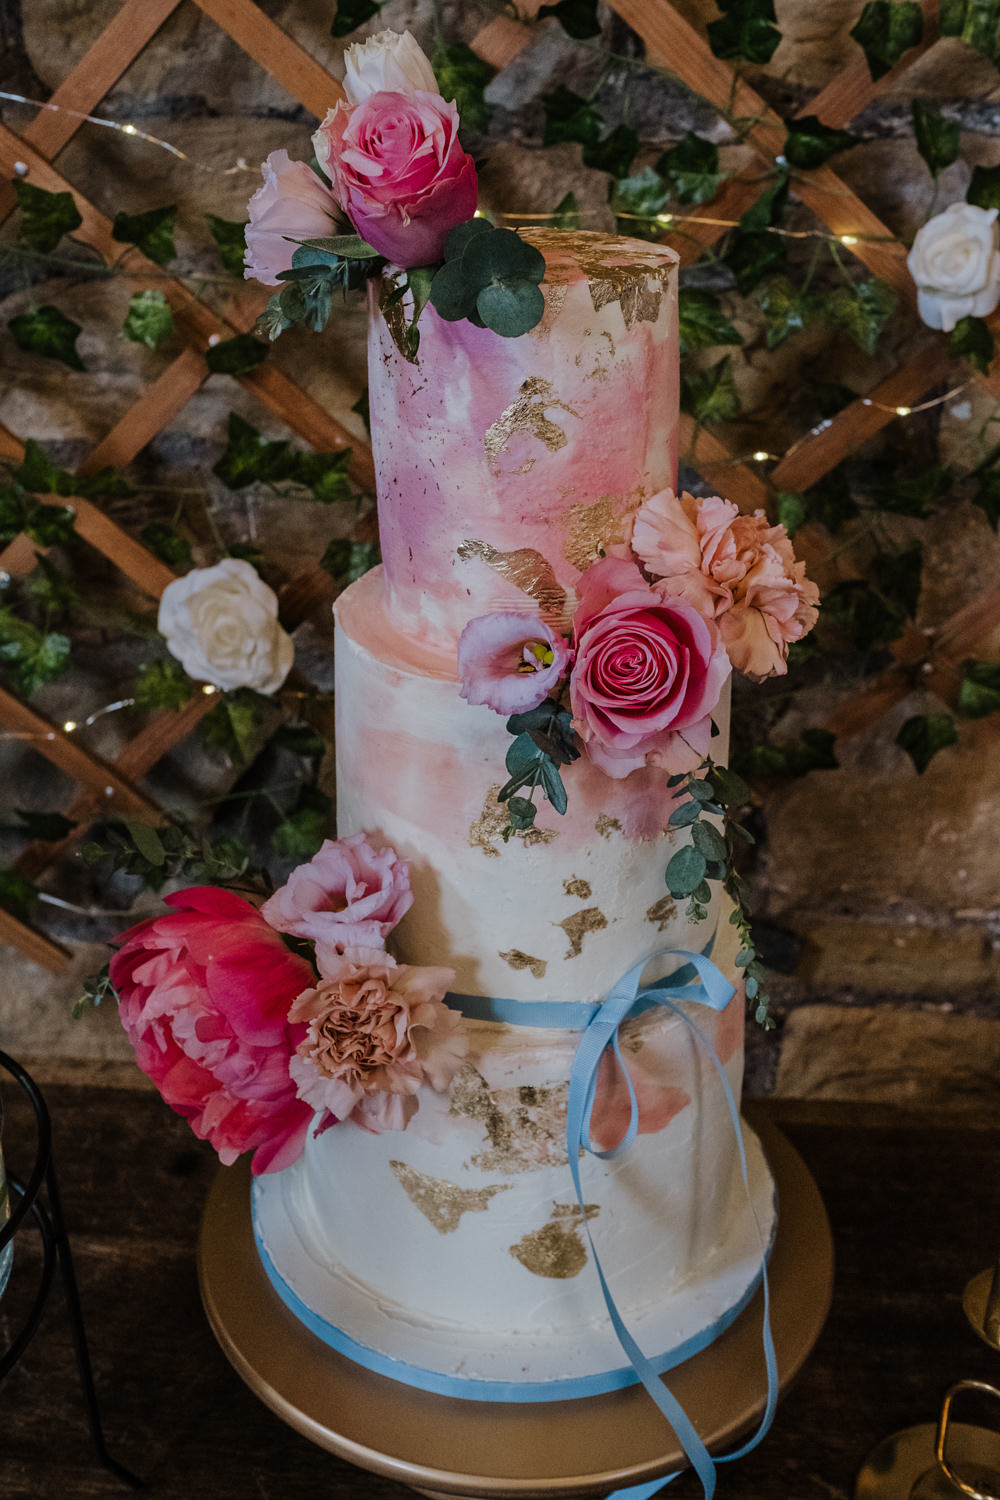 Cake Gold Leaf Flowers Florals Pink Ribbon Oakwell Hall Wedding Jenna Kathleen Photographer